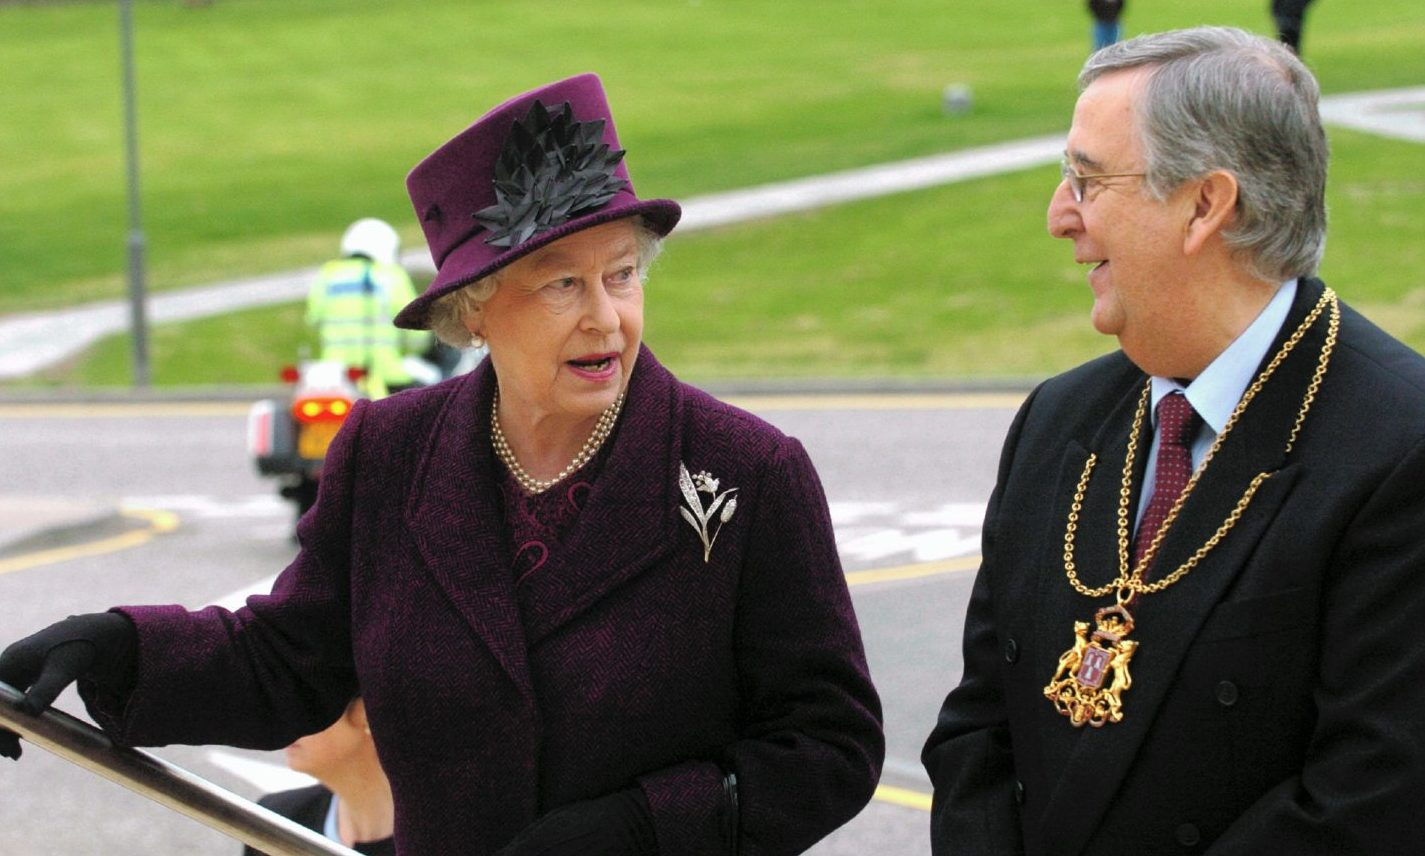 The Queen formally opens Royal Aberdeen Children's Hospital with Lord Provost John Reynolds in 2005.